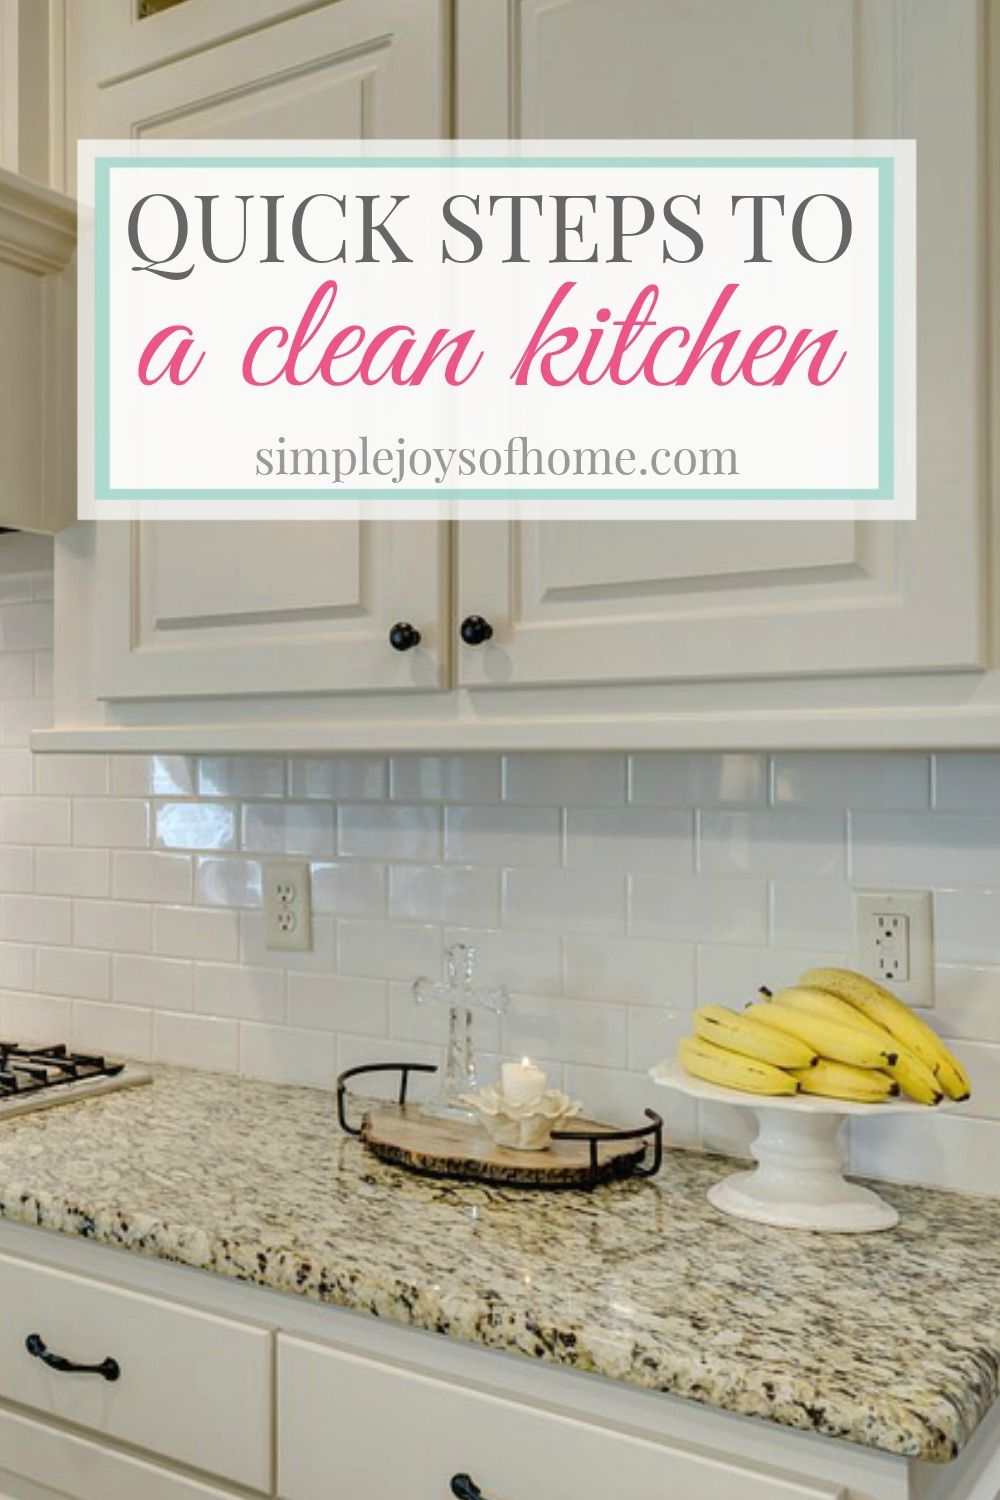 The Kitchen Is The Heart Of The Home And It Can Quickly Get Out Of Order